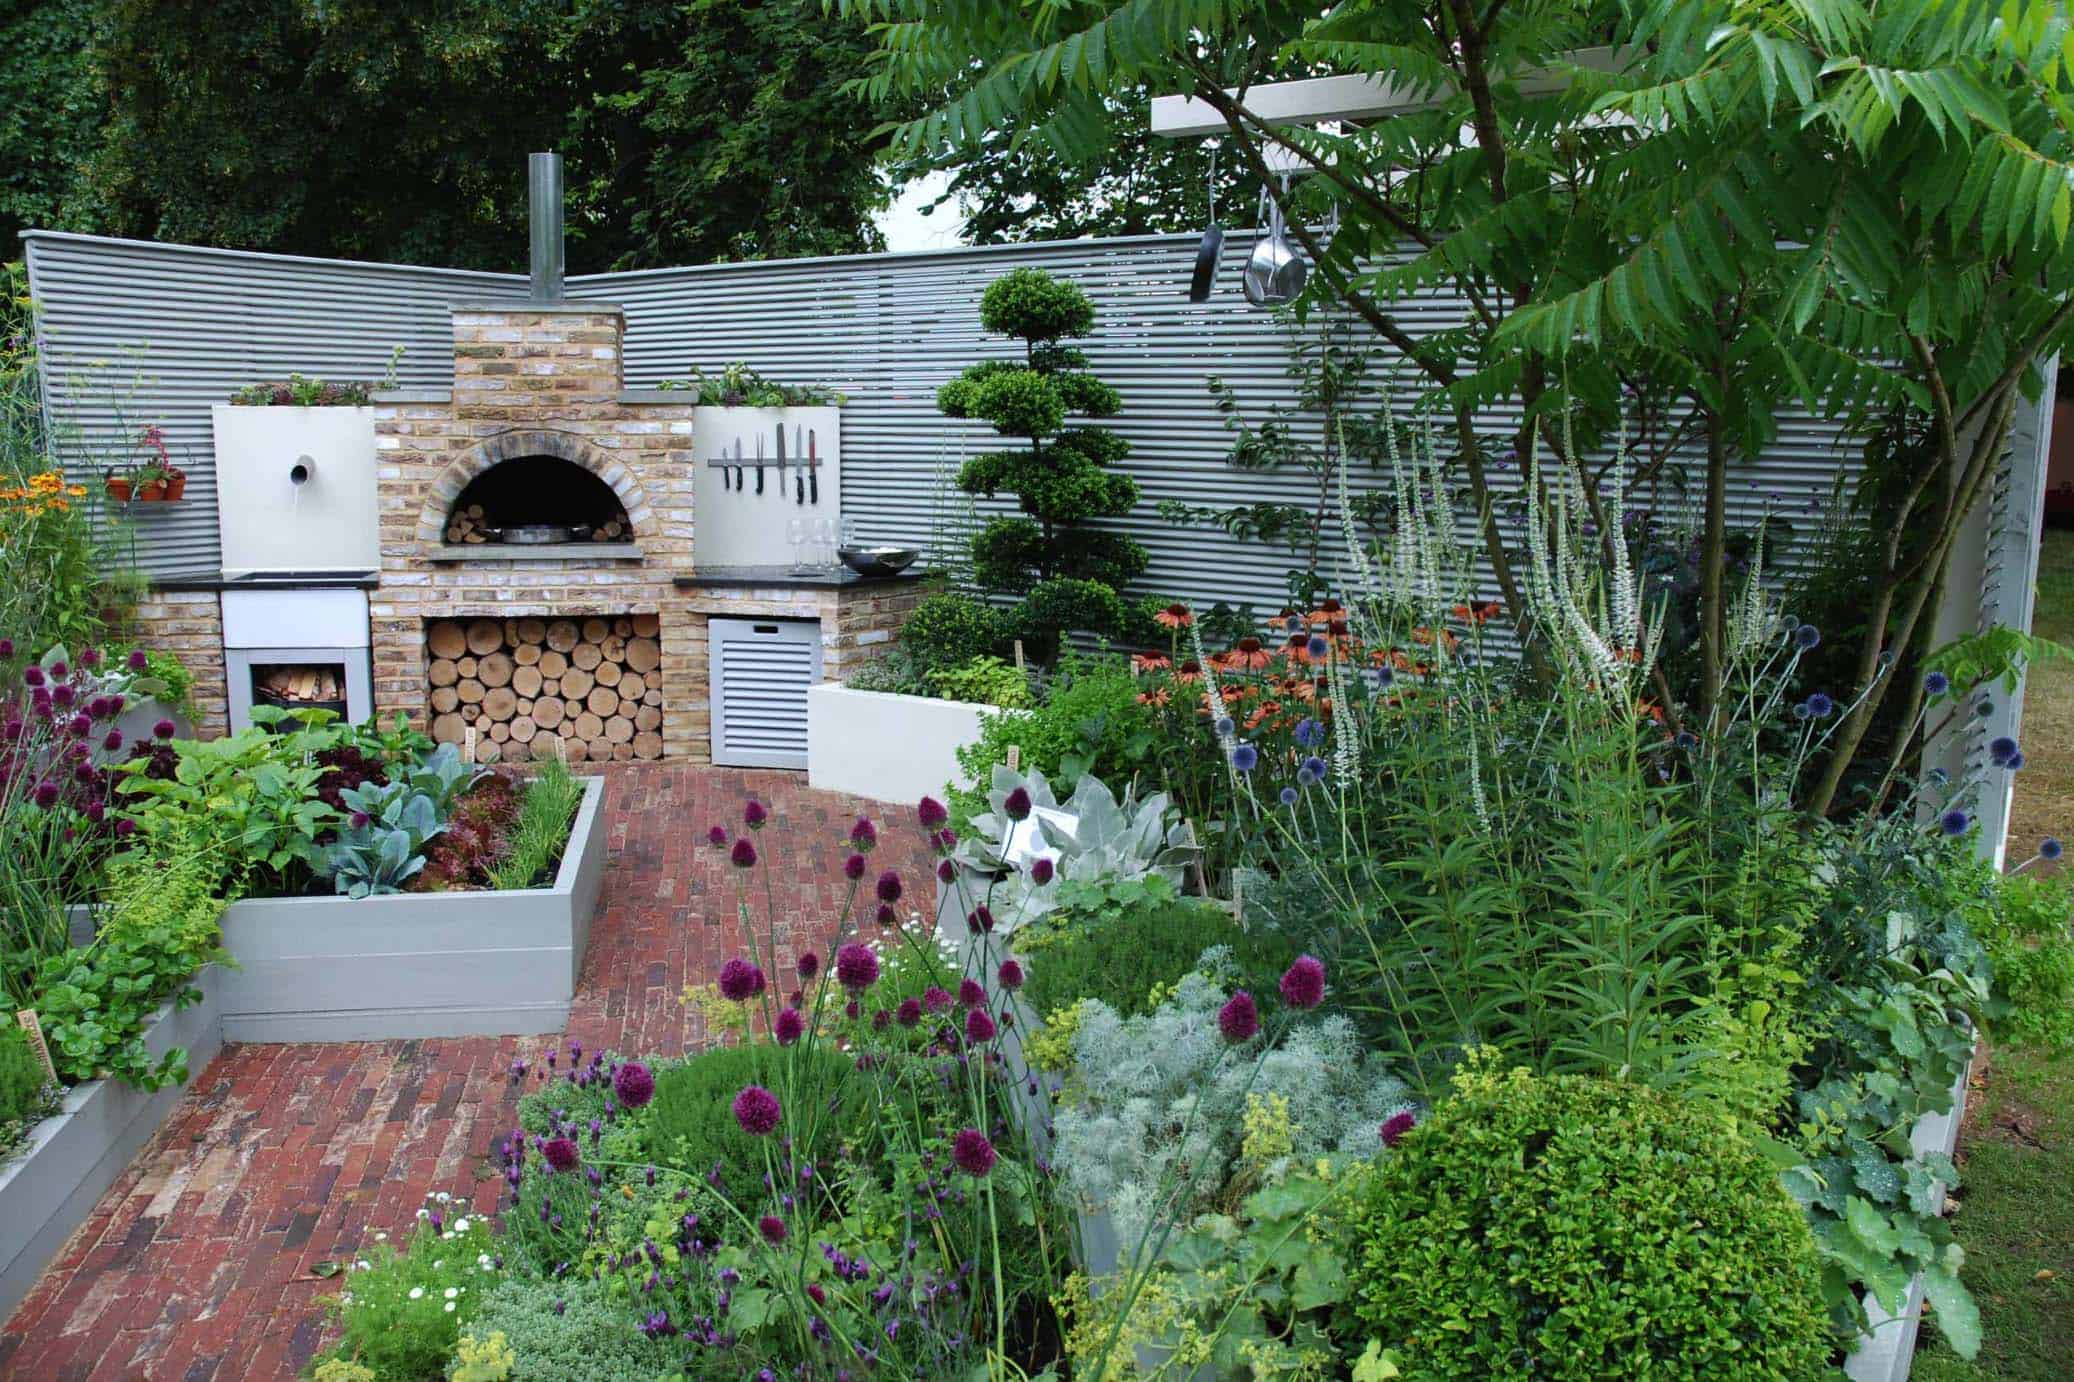 30 Amazing Ideas For Growing A Vegetable Garden In Your Backyard on edible flowers, spray painting ideas and designs, back yard with pool landscape designs, edible simple backyard designs, back yard zen garden designs, tv room ideas and designs, raised bed garden planters designs, garden pathway ideas and designs, indoor bar ideas and designs, yard and garden designs, outdoor garden designs, jewelry making ideas and designs, garden wall designs, easy garden ideas and designs, small japanese garden designs, vegetable garden ideas and designs, container garden ideas and designs, front yard herb garden designs, indoor garden designs, flower garden designs,